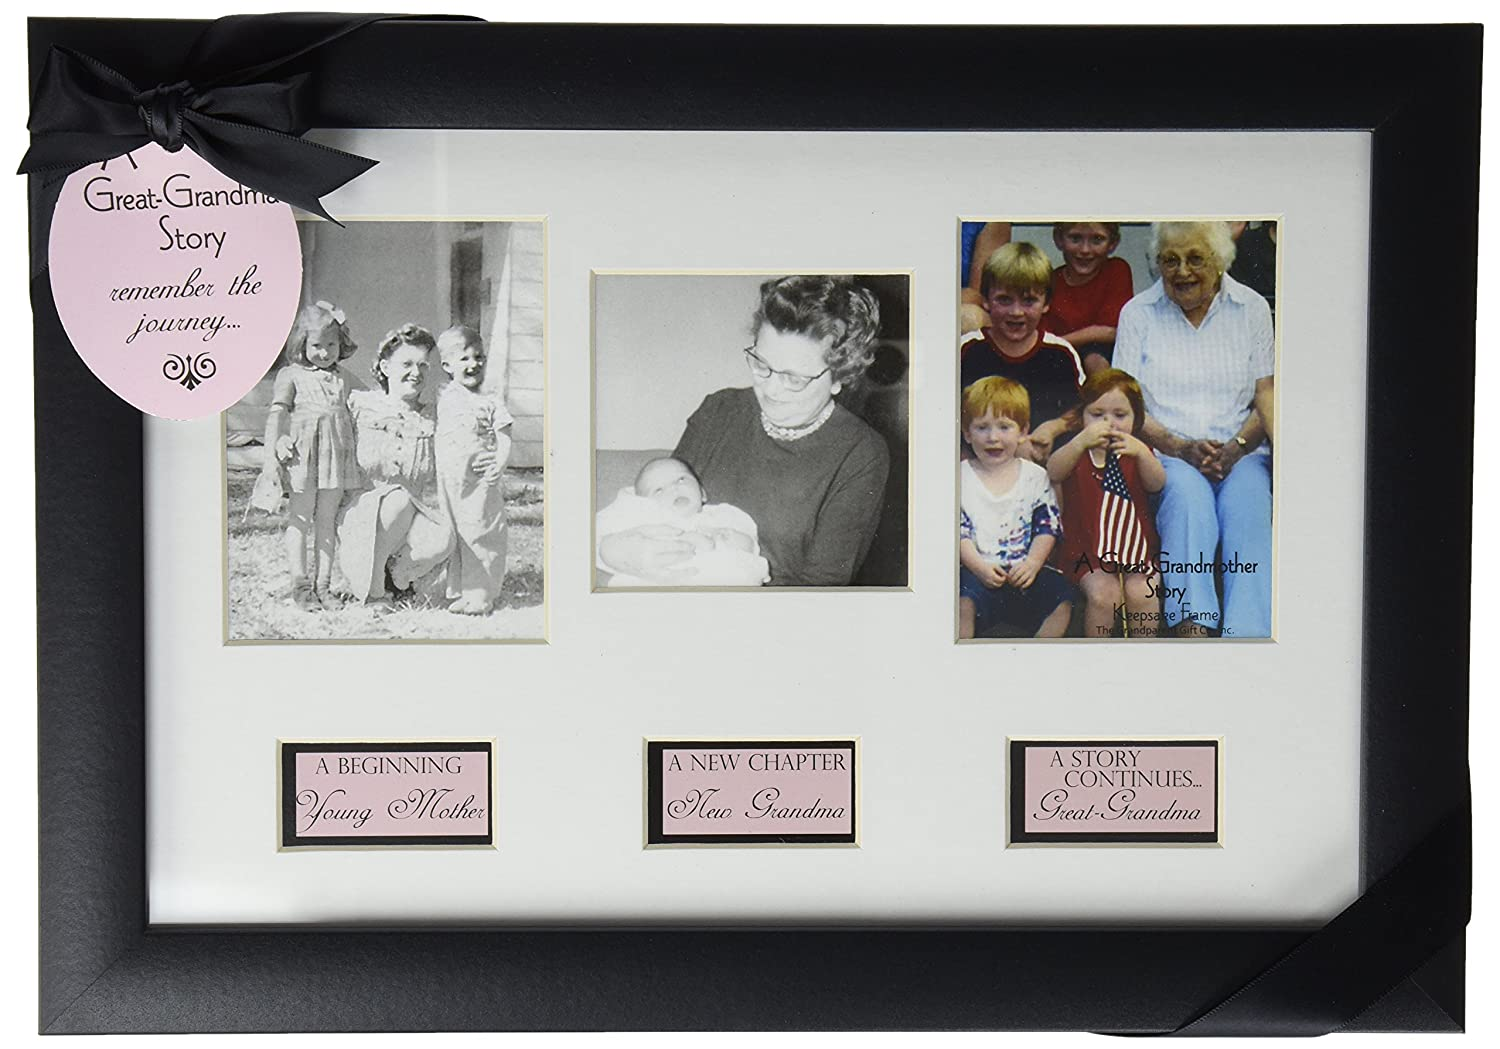 Amazon.com : The Grandparent Gift Life Story Frame, Great-Grandma ...